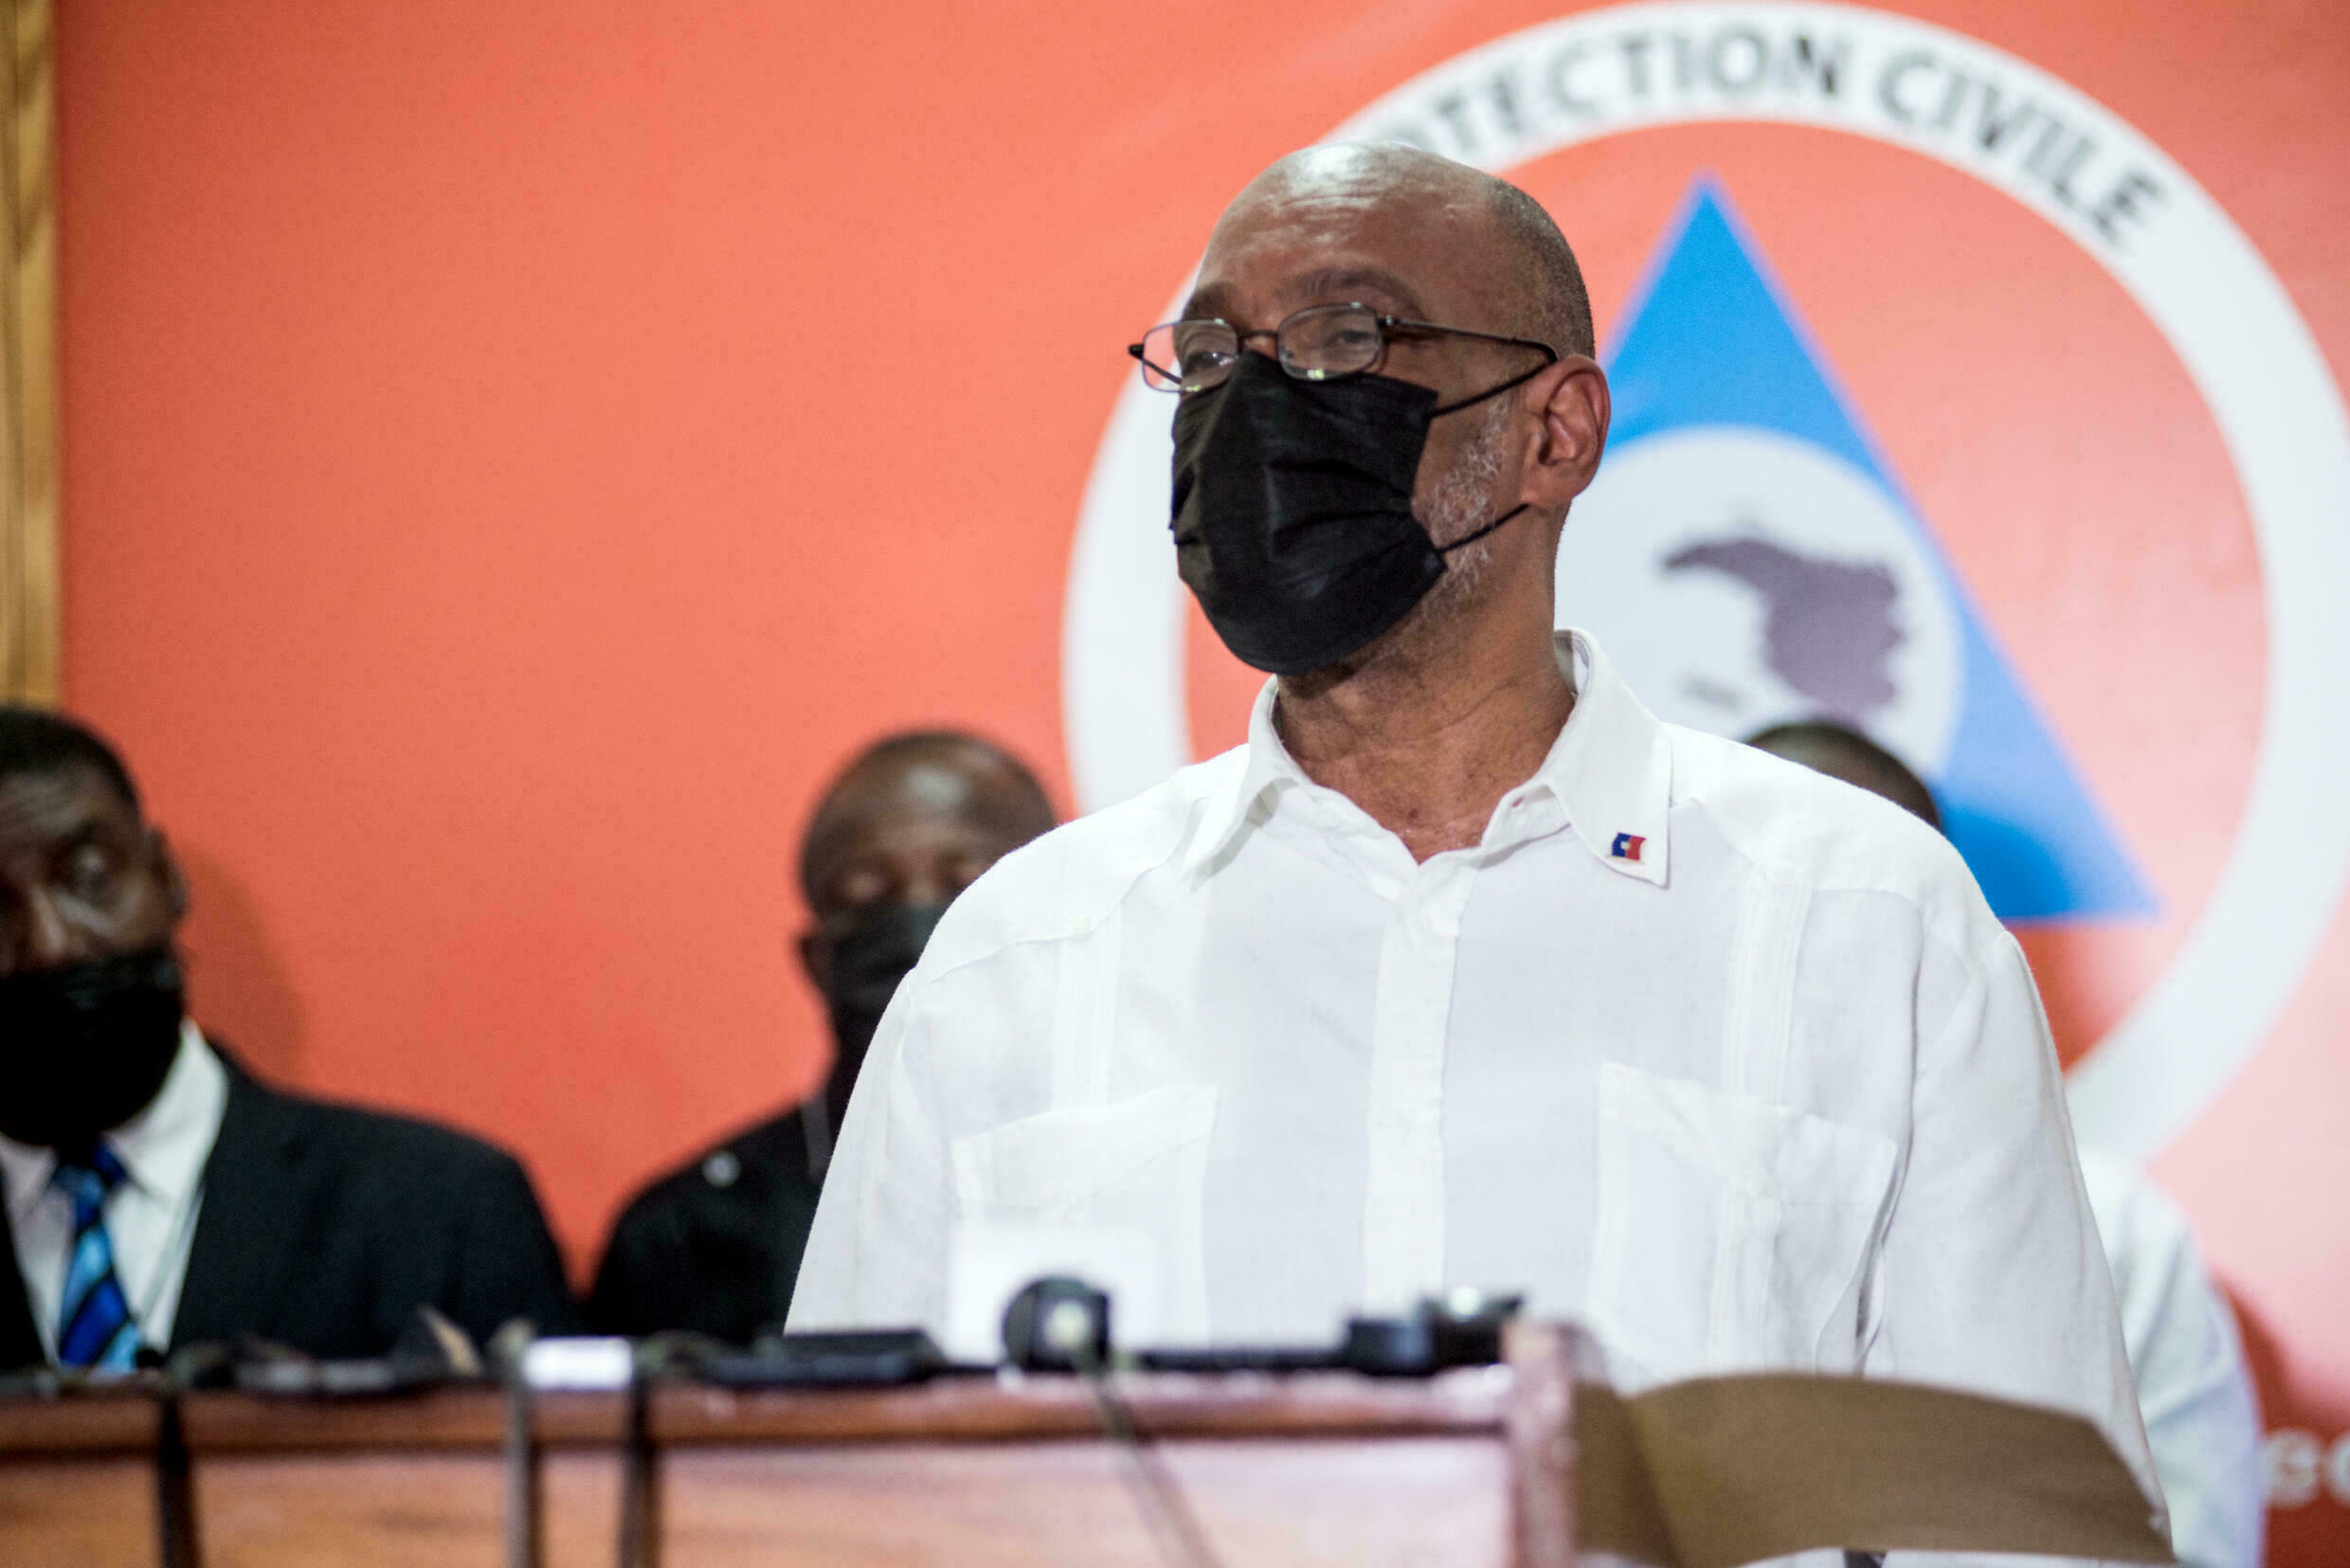 Haitian Prime Minister Ariel Henry (pictured August 2021) said a new constitution would not solve all of the island nation's problems but would help organize the government more efficiently